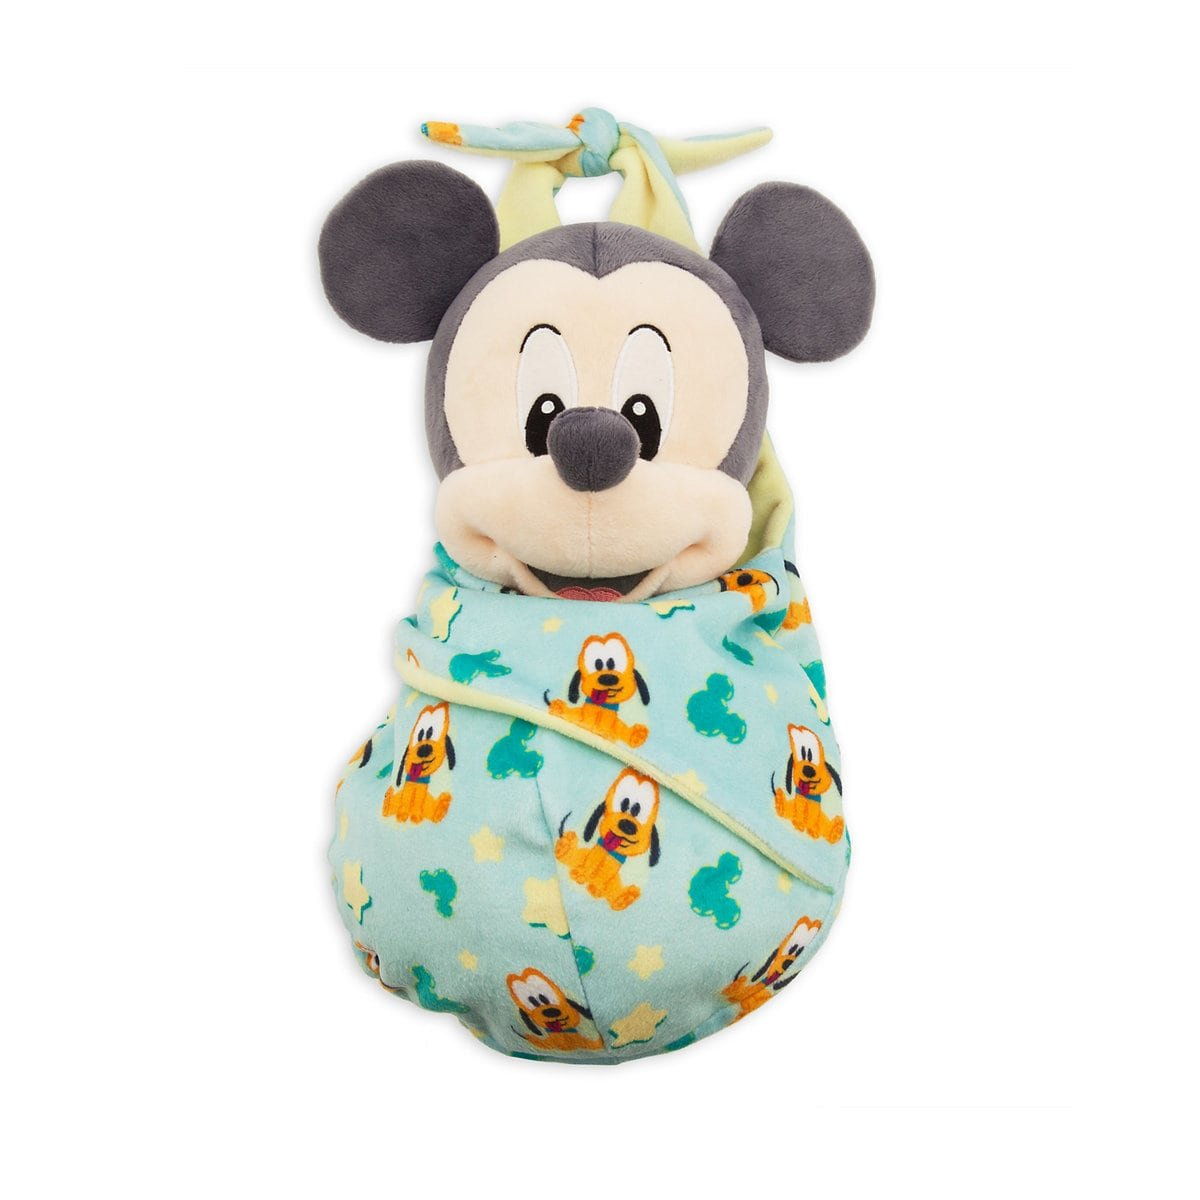 Disney Parks Mickey Mouse Plush with Blanket Pouch - Disney's Babies - Small